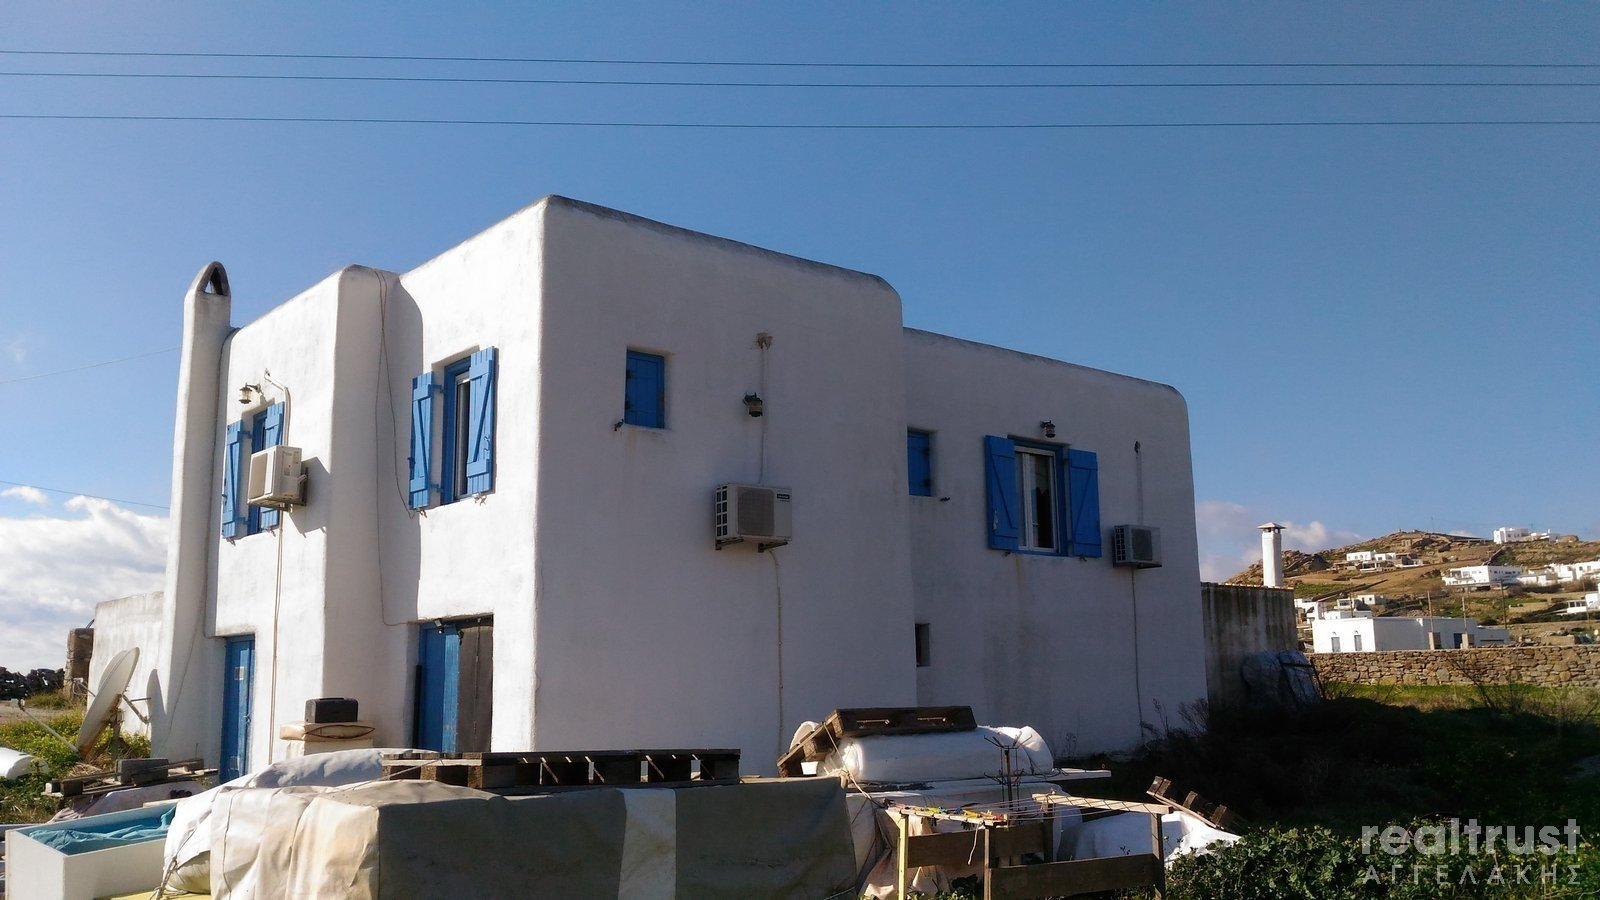 DETACHED HOUSE for Sale - KYKLADES